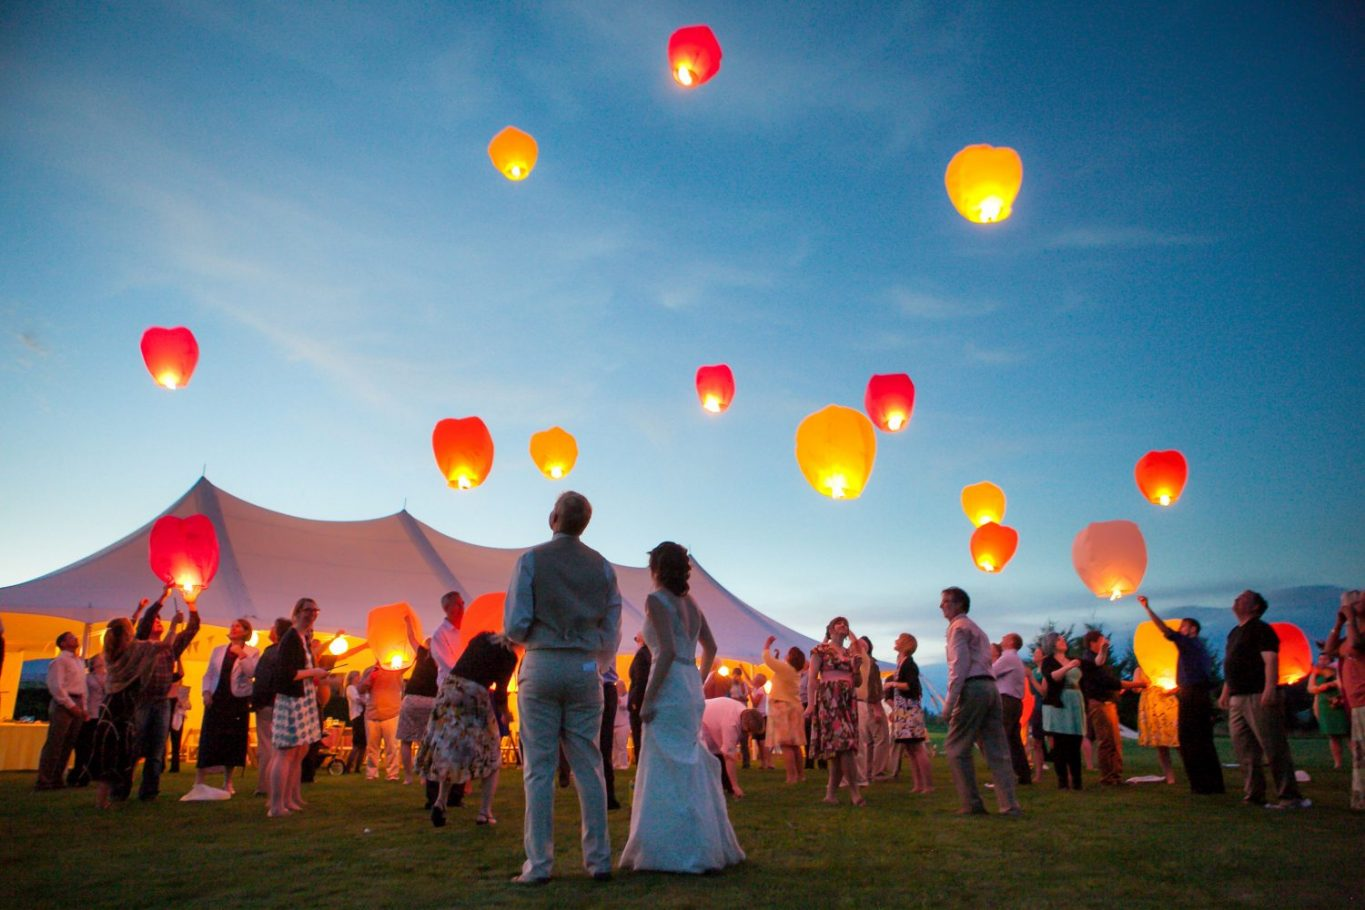 bellingham-lantern-release-photo-outdoor-wedding-reception